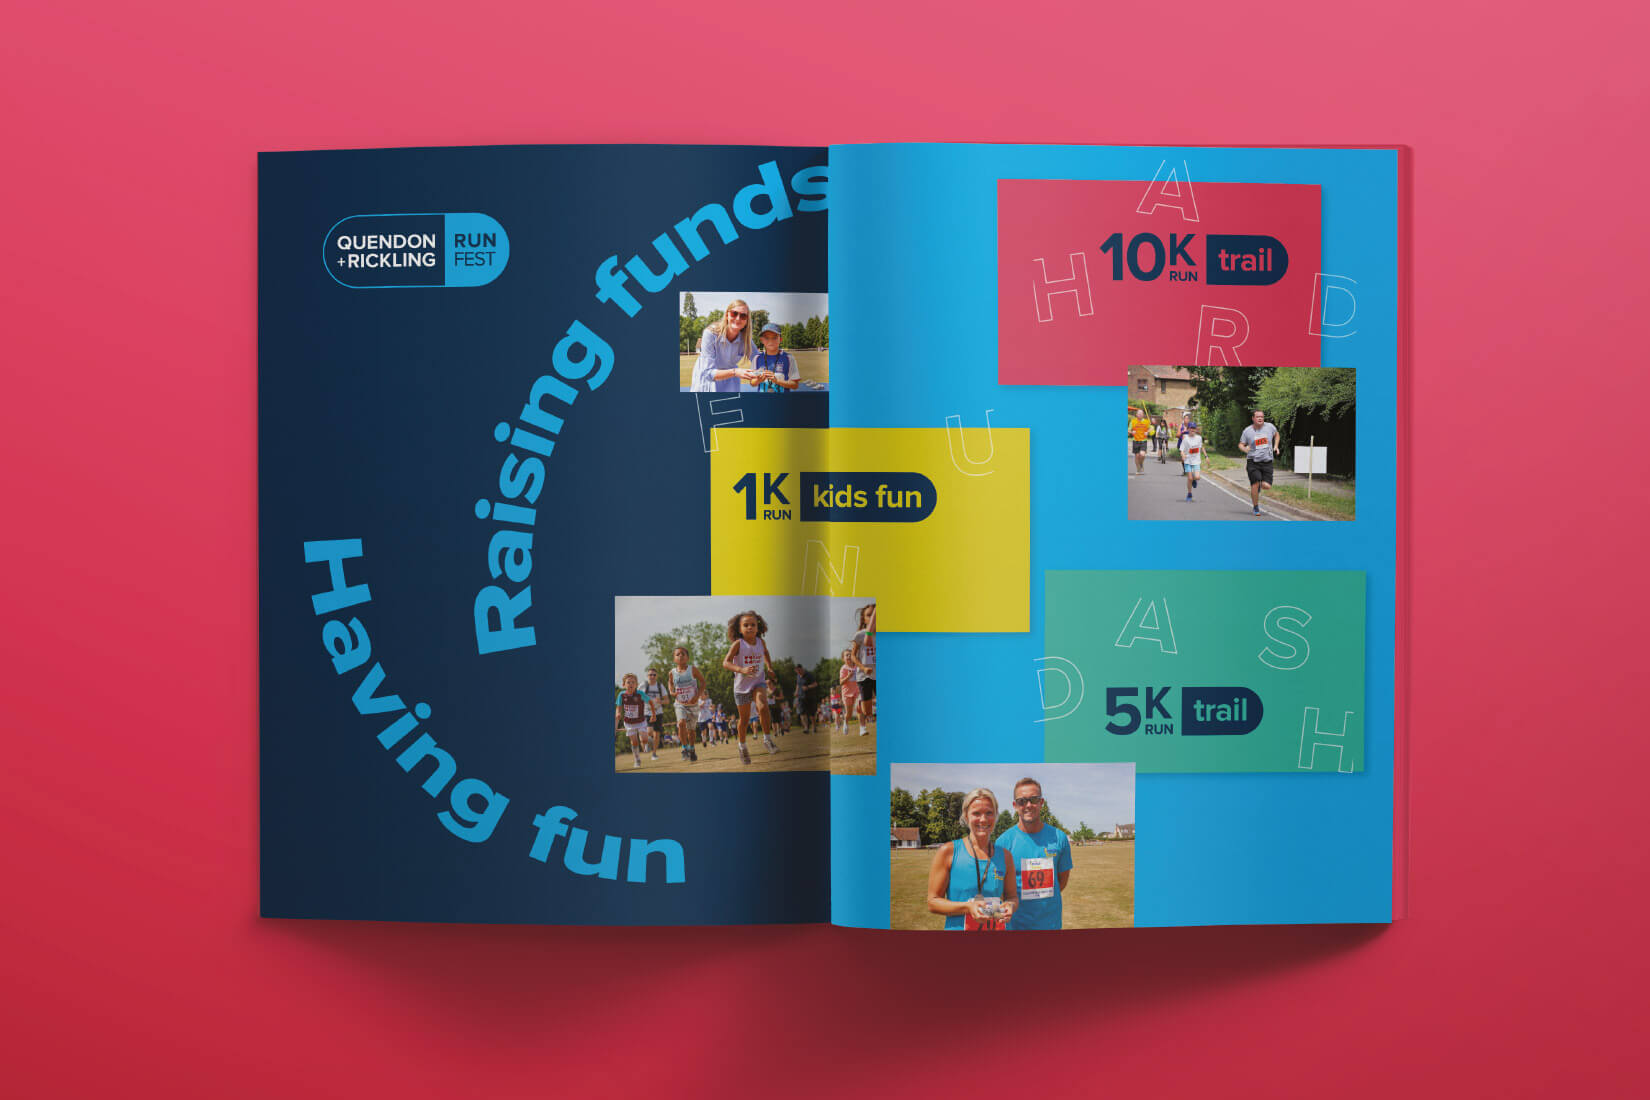 Quendon and Rickling Run Fest print publication with people running and Raisng Funds while Having Fun